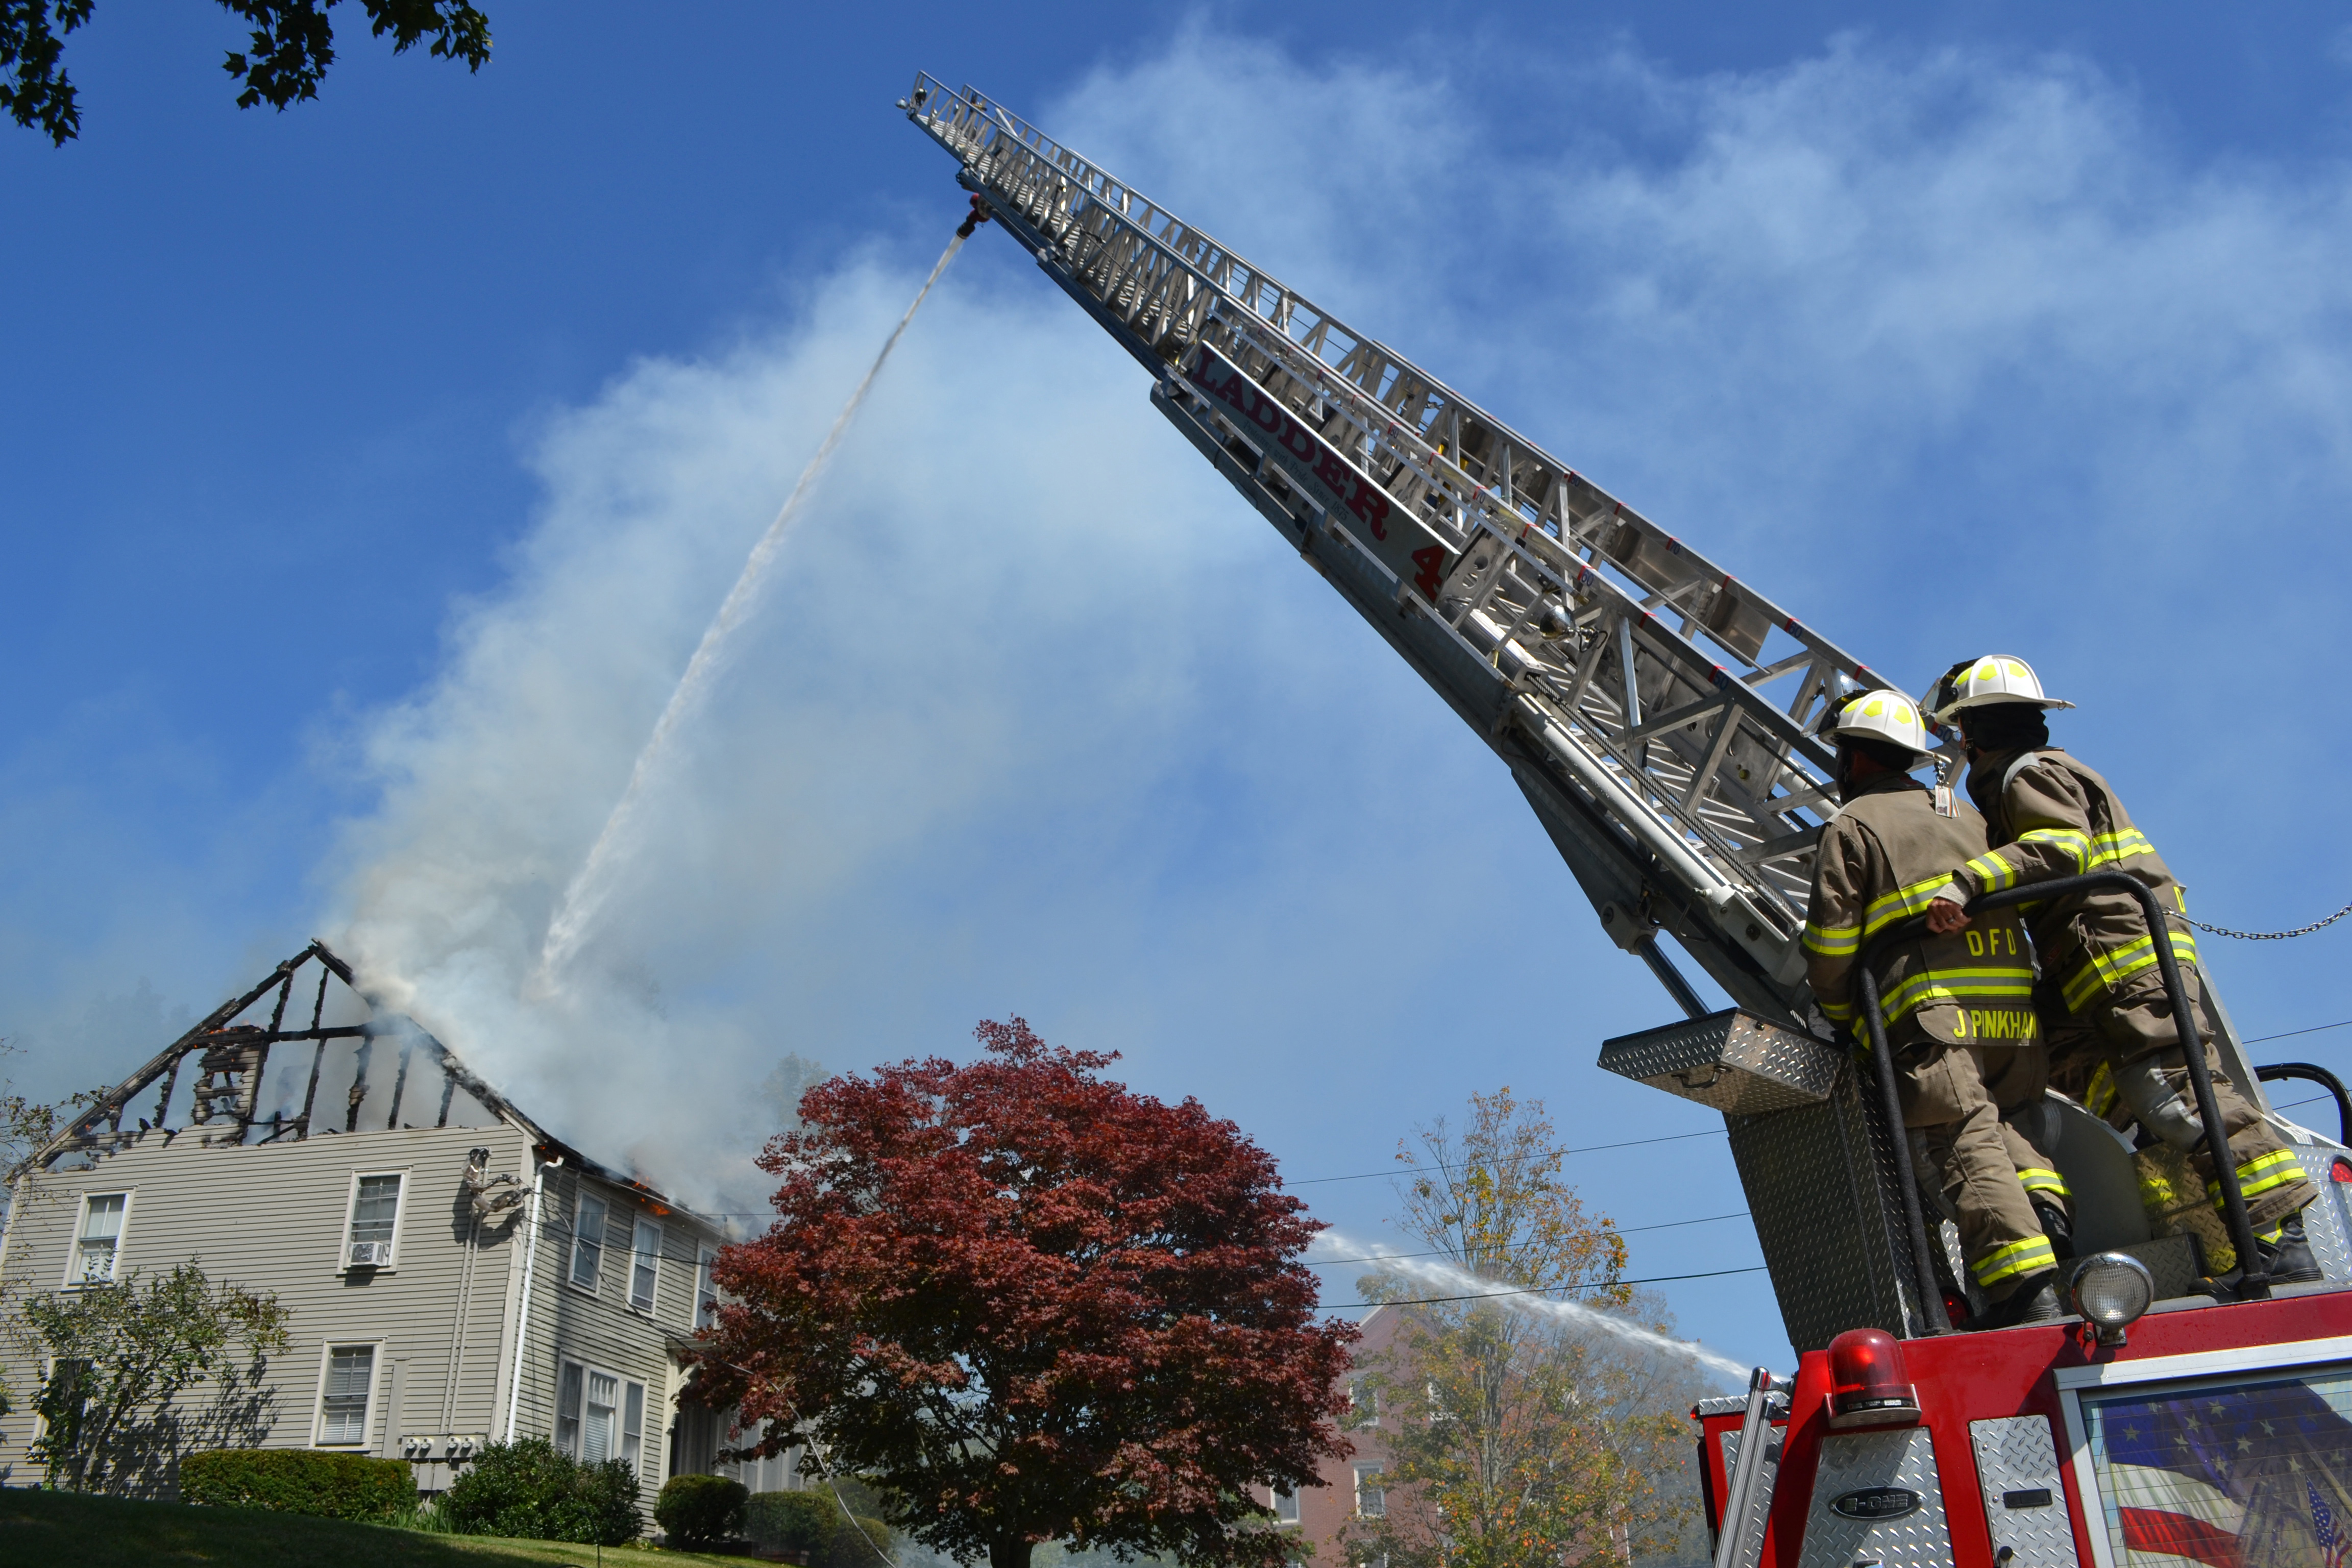 Damariscotta firefighters Josh Pinkham (left) and Jim Hall use their department's ladder truck to fight a fire at 50 Main St. in Newcastle on Tuesday, Sept. 12. (Maia Zewert photo)